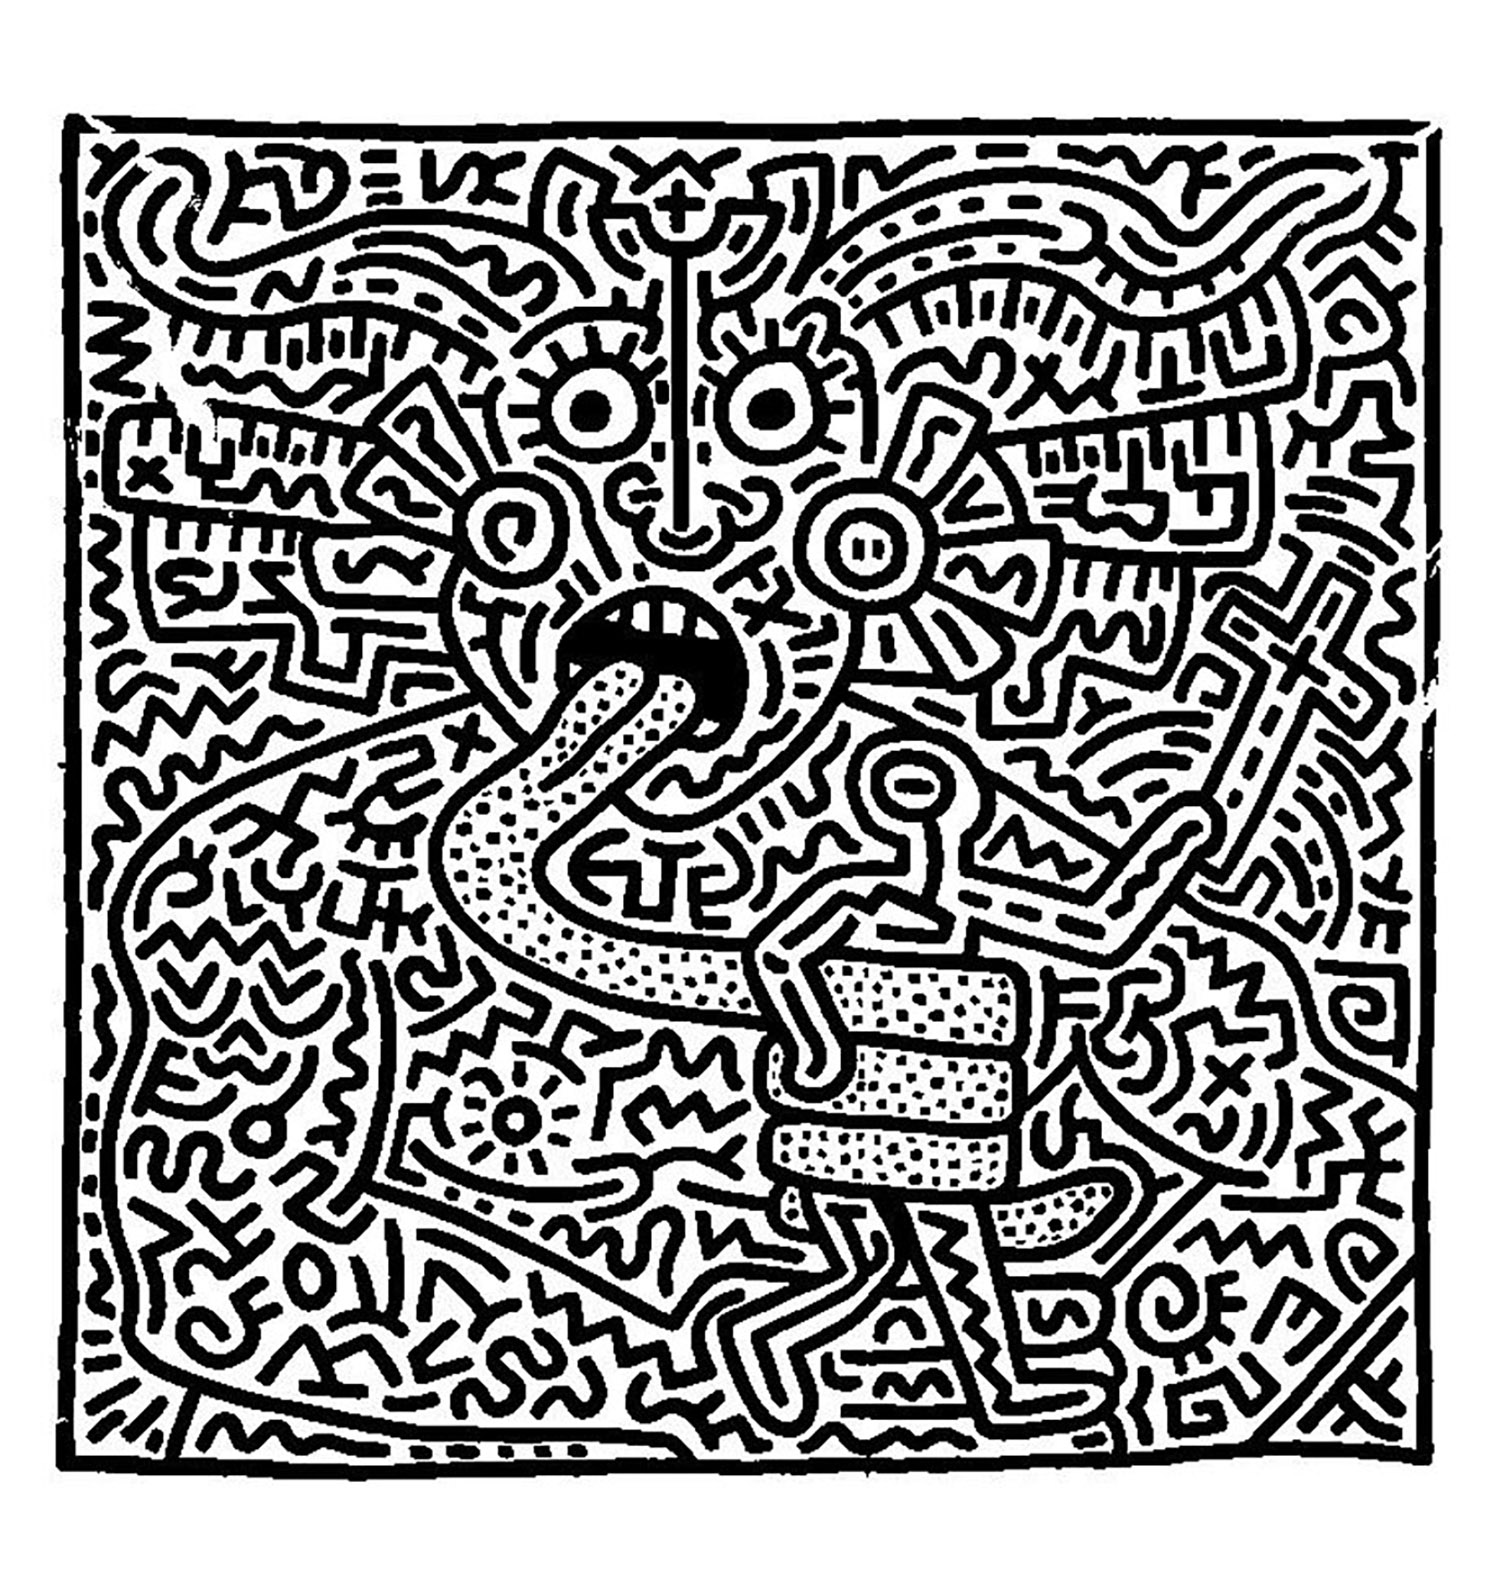 Keith haring 1 - Pop art - Coloring pages for adults